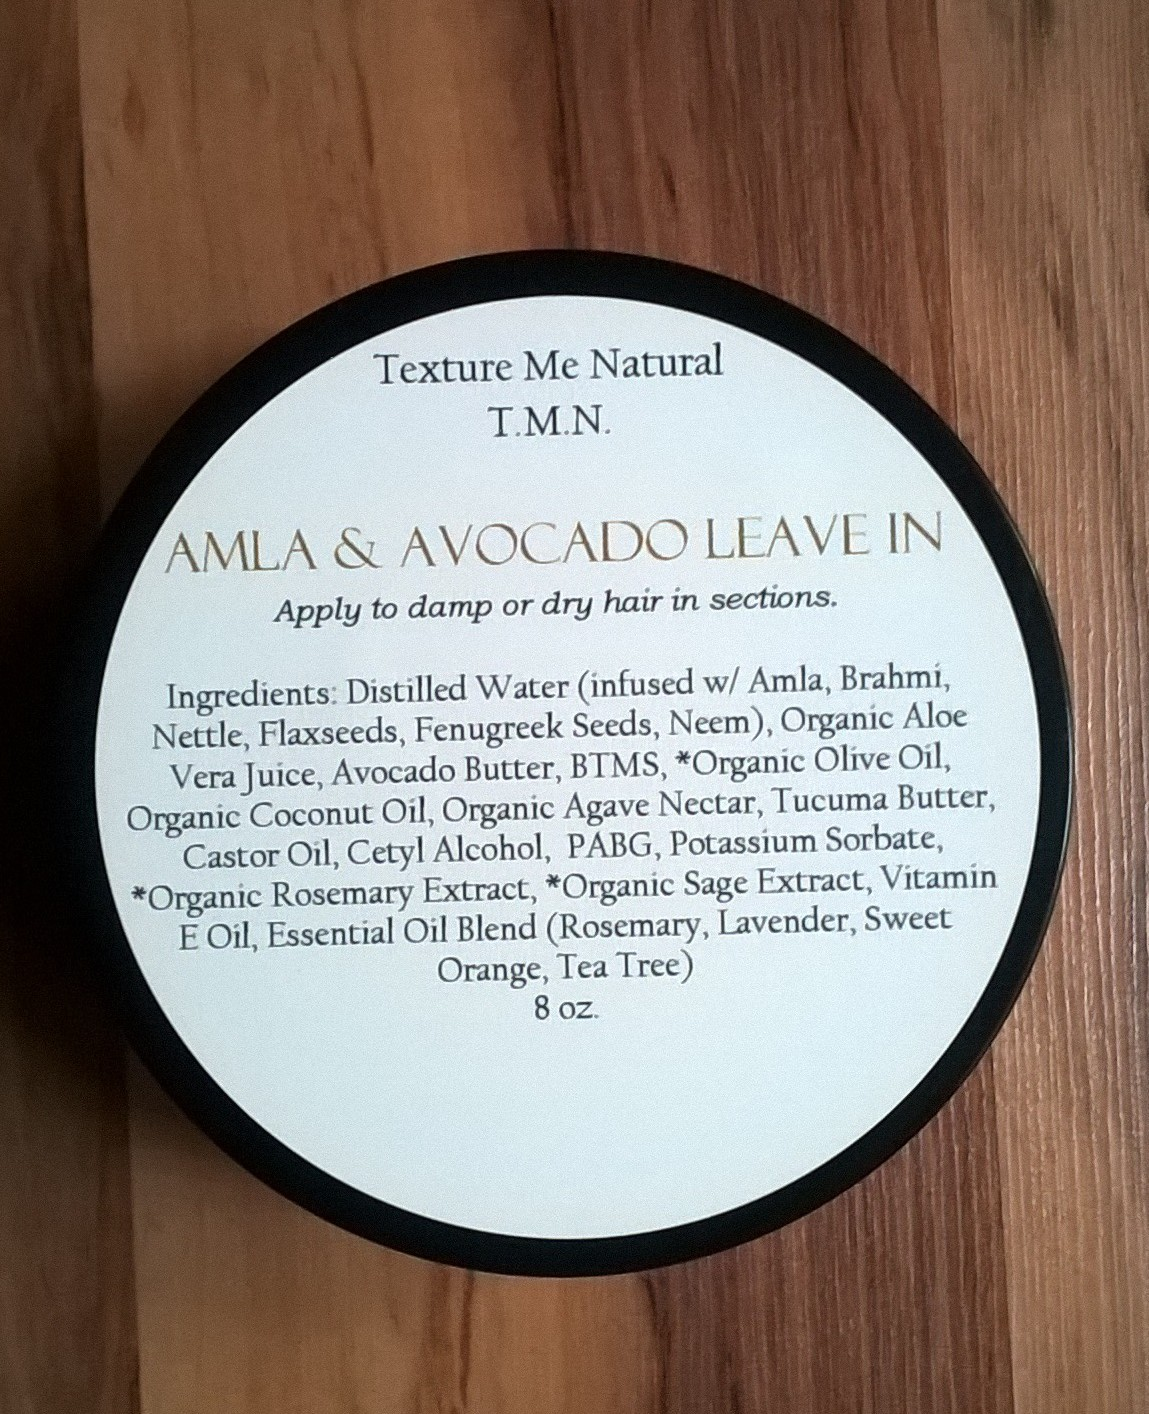 AMLA & AVOCADO LEAVE IN